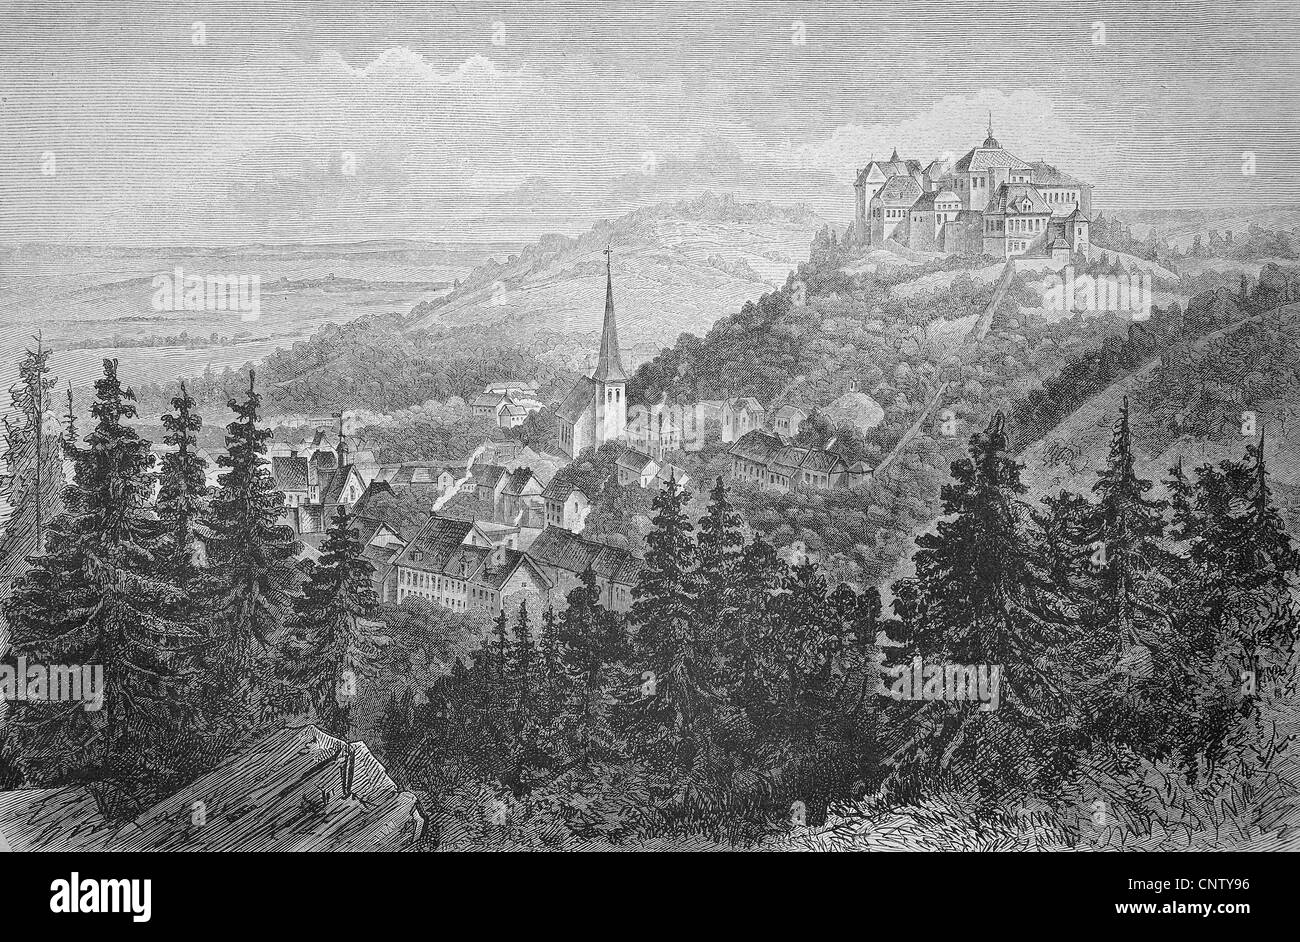 Castle with the town of Blankenburg in the Harz region, Saxony-Anhalt, Germany, historic woodcut, c. 1880 - Stock Image